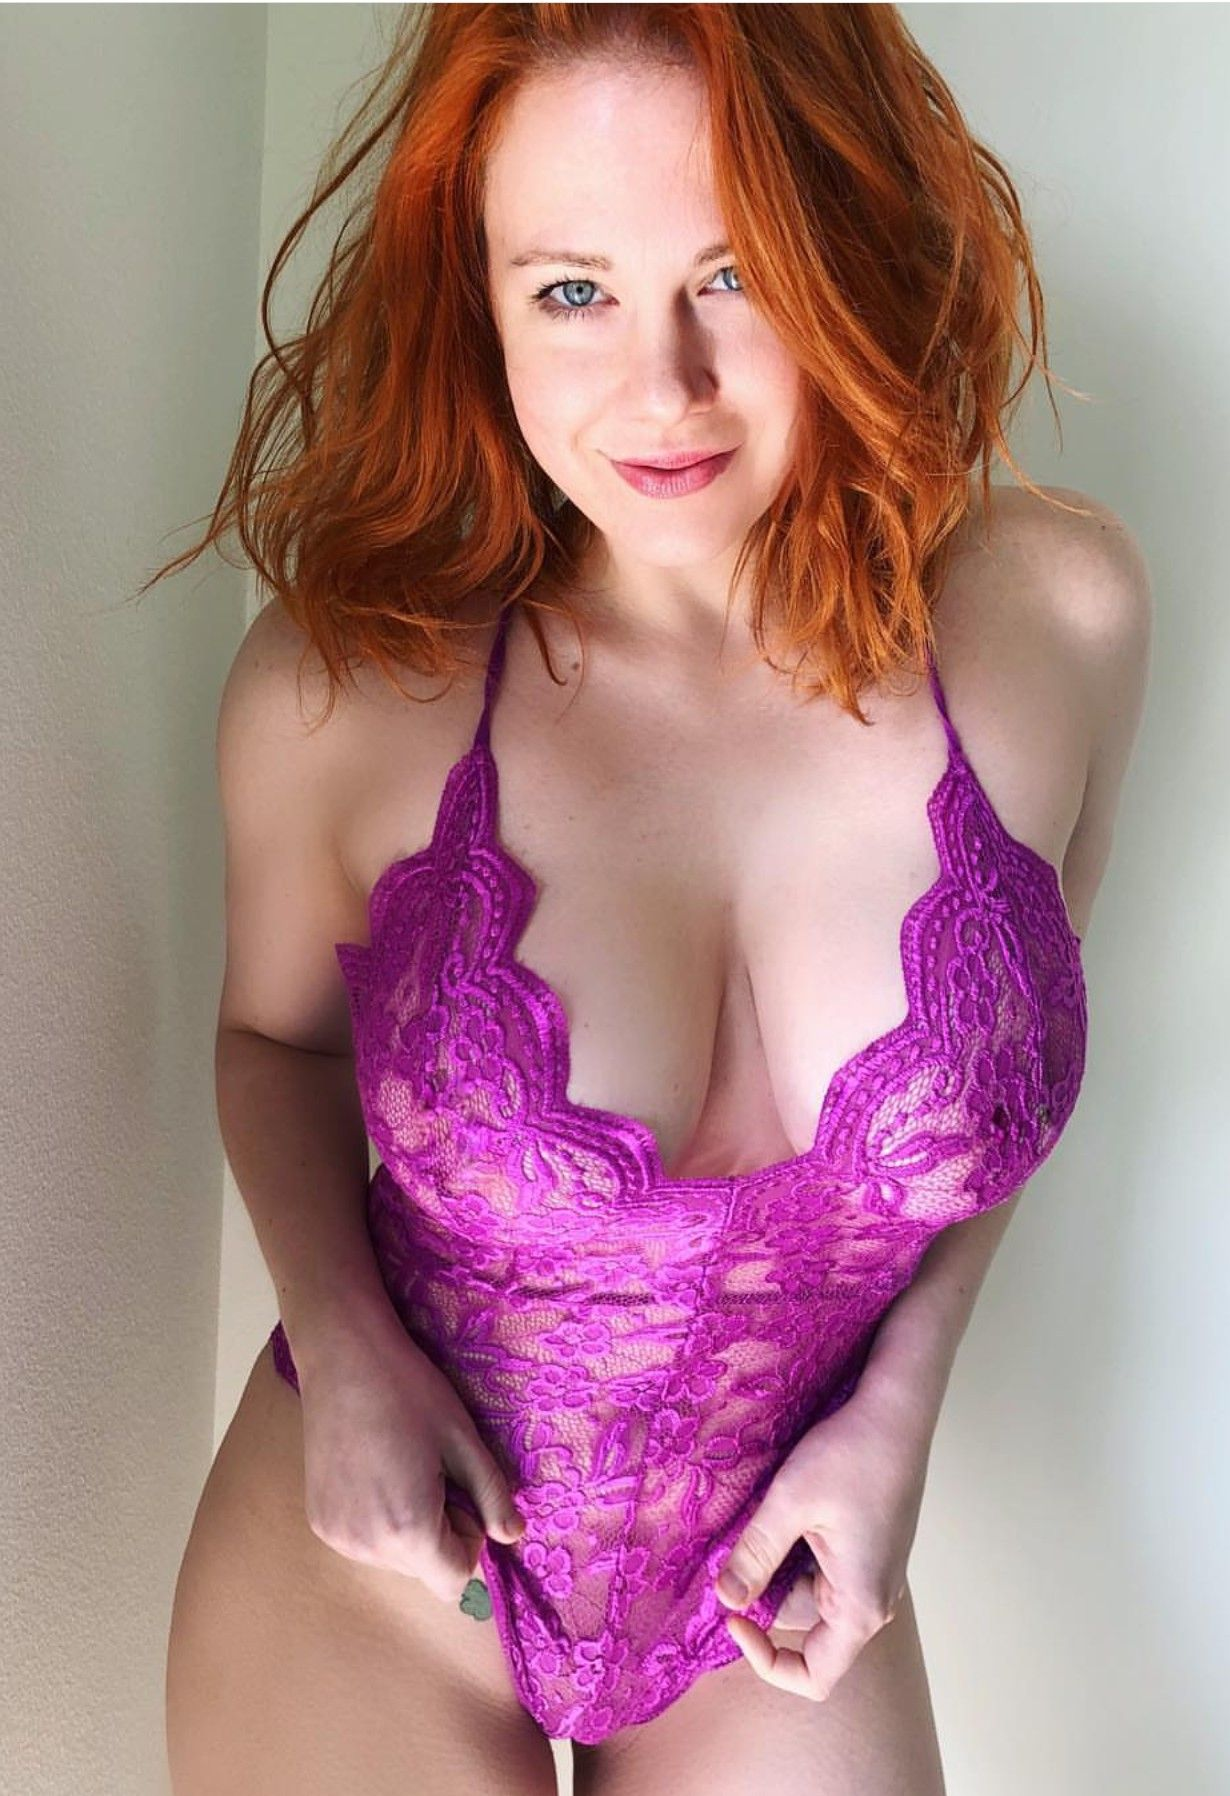 Paparazzi Maitland Ward Baxter naked (14 photos), Topless, Cleavage, Feet, legs 2006